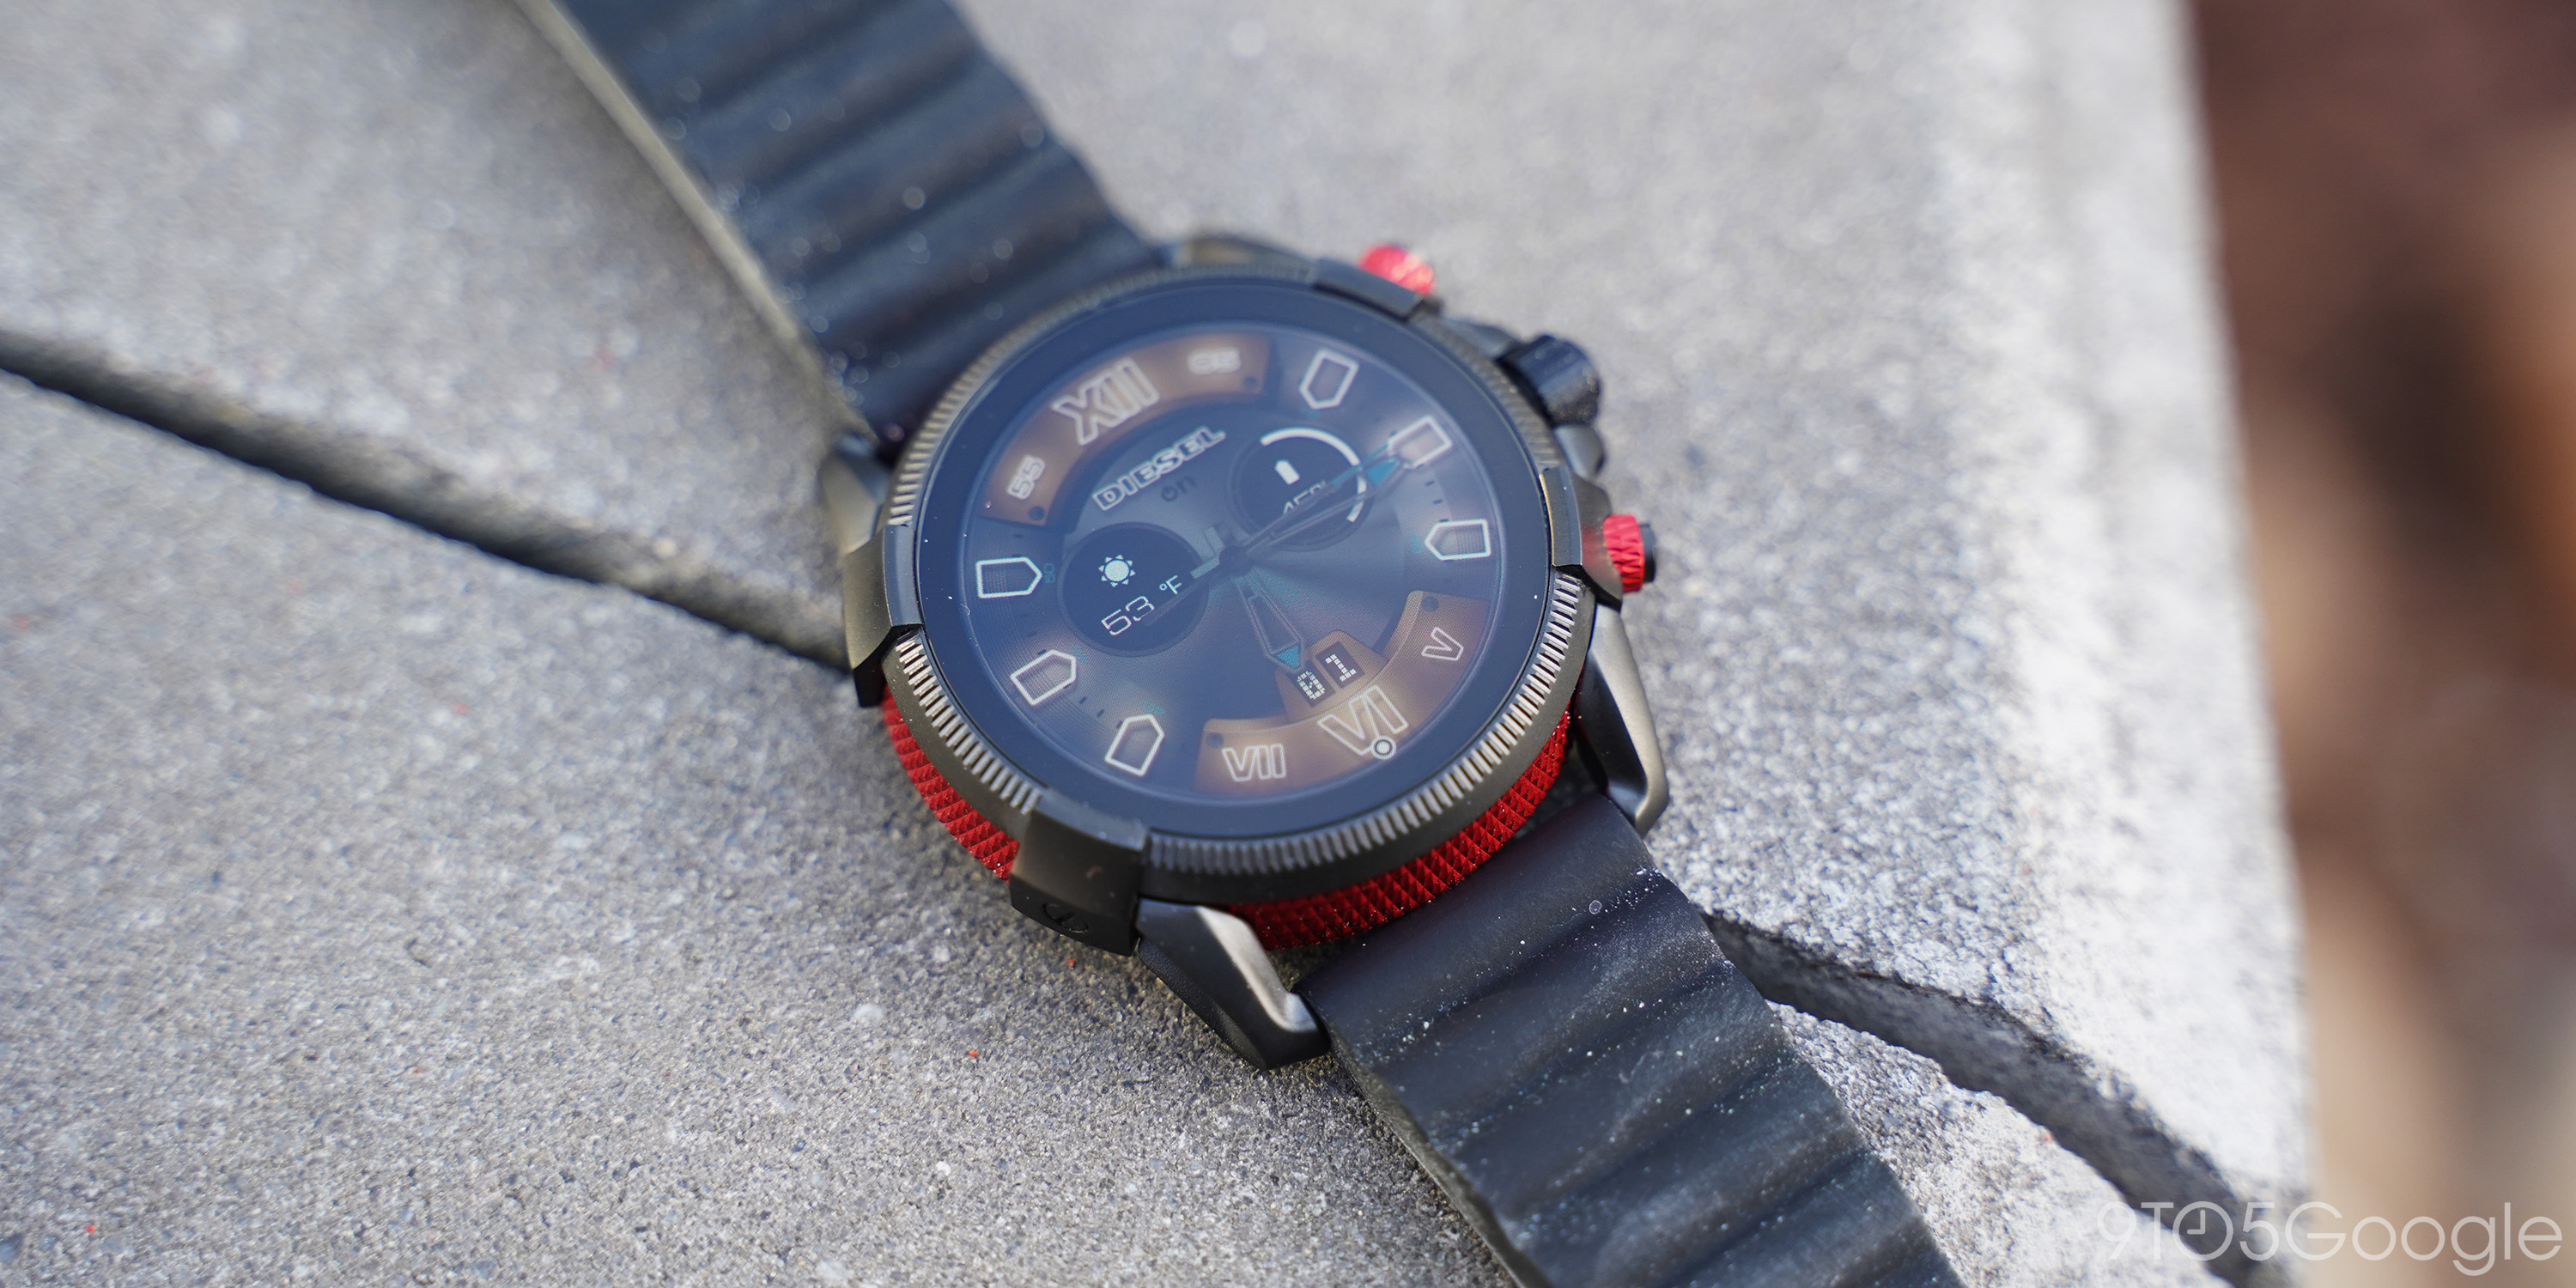 dbad6ee4ccb537 Best Android Smartwatches: Wear OS, Samsung, more - 9to5Google